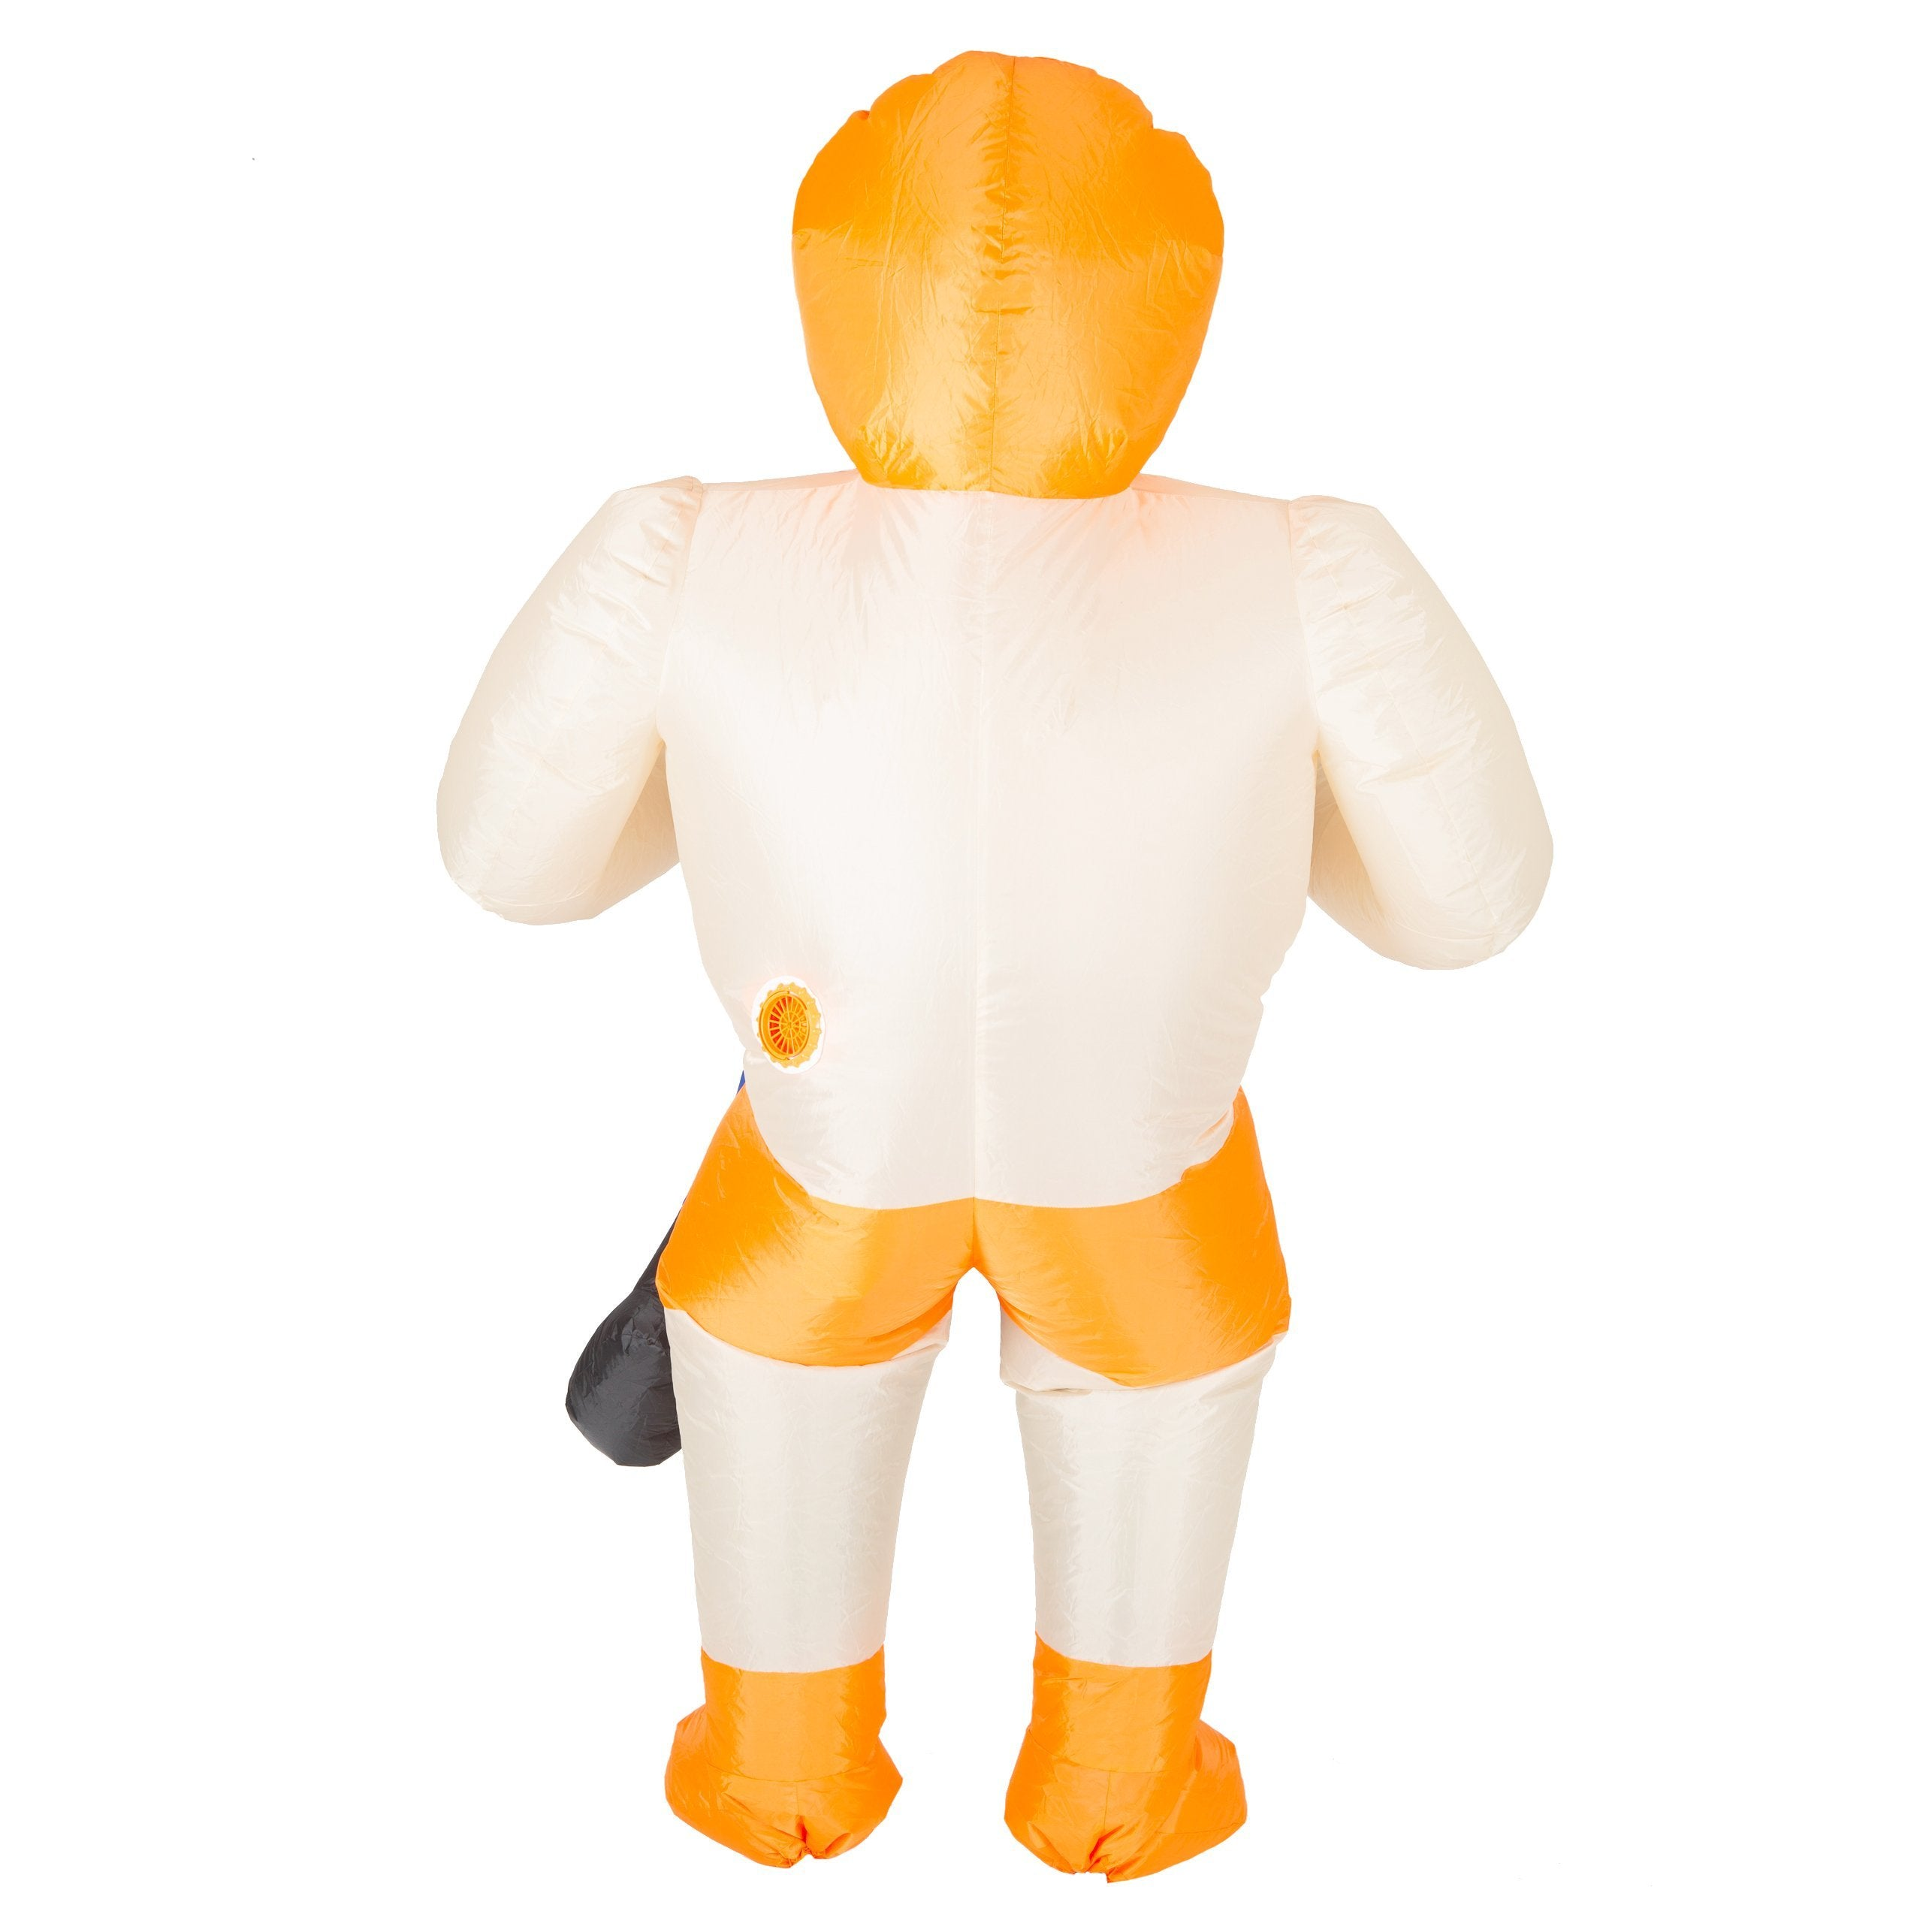 Bodysocks - Inflatable Lift You Up Mexican Wrestler Costume